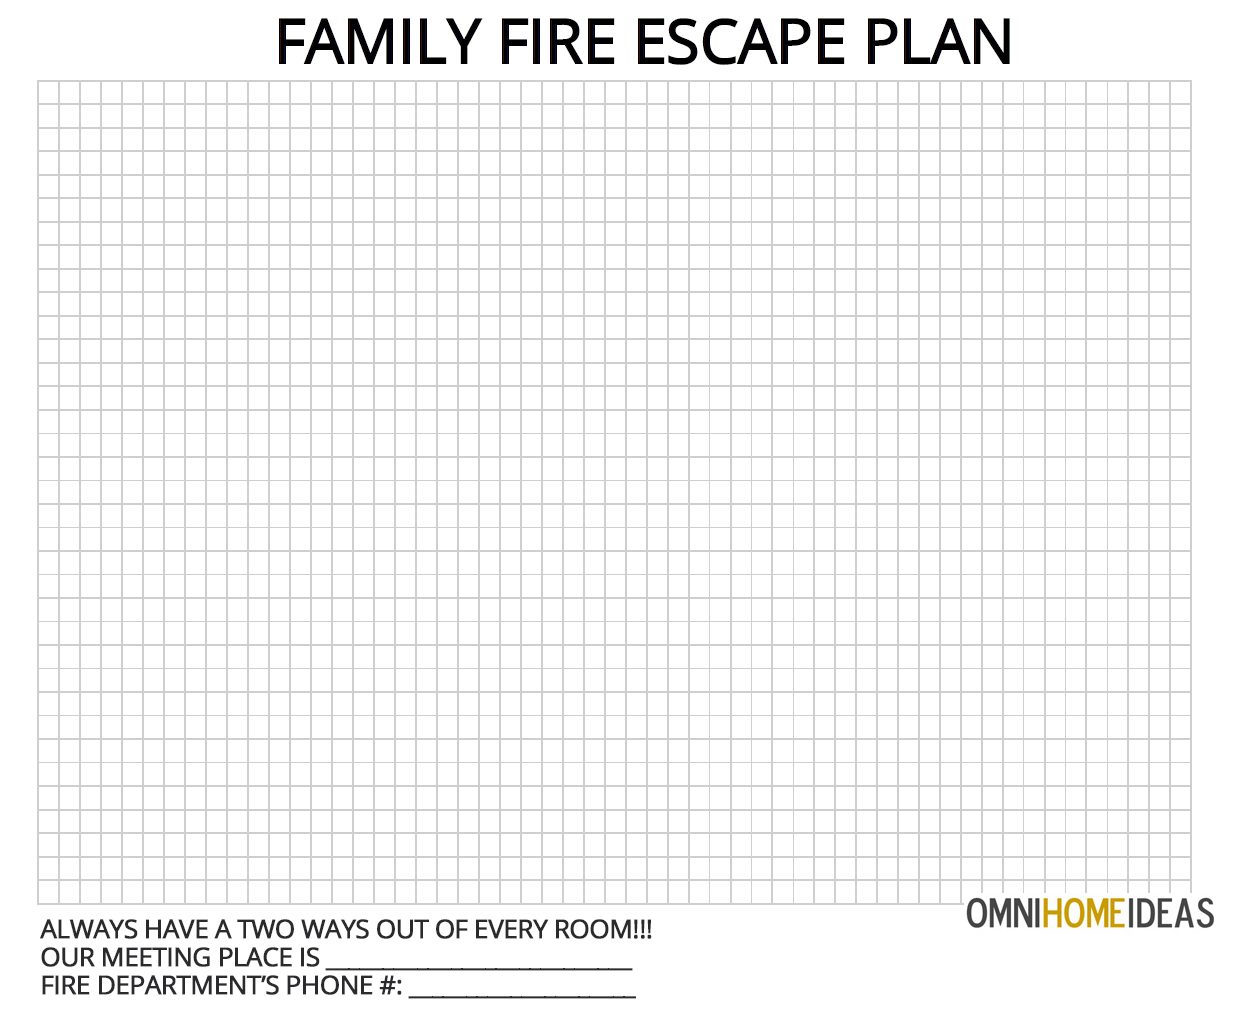 How To Make A Fire Escape Plan For Home With Printable